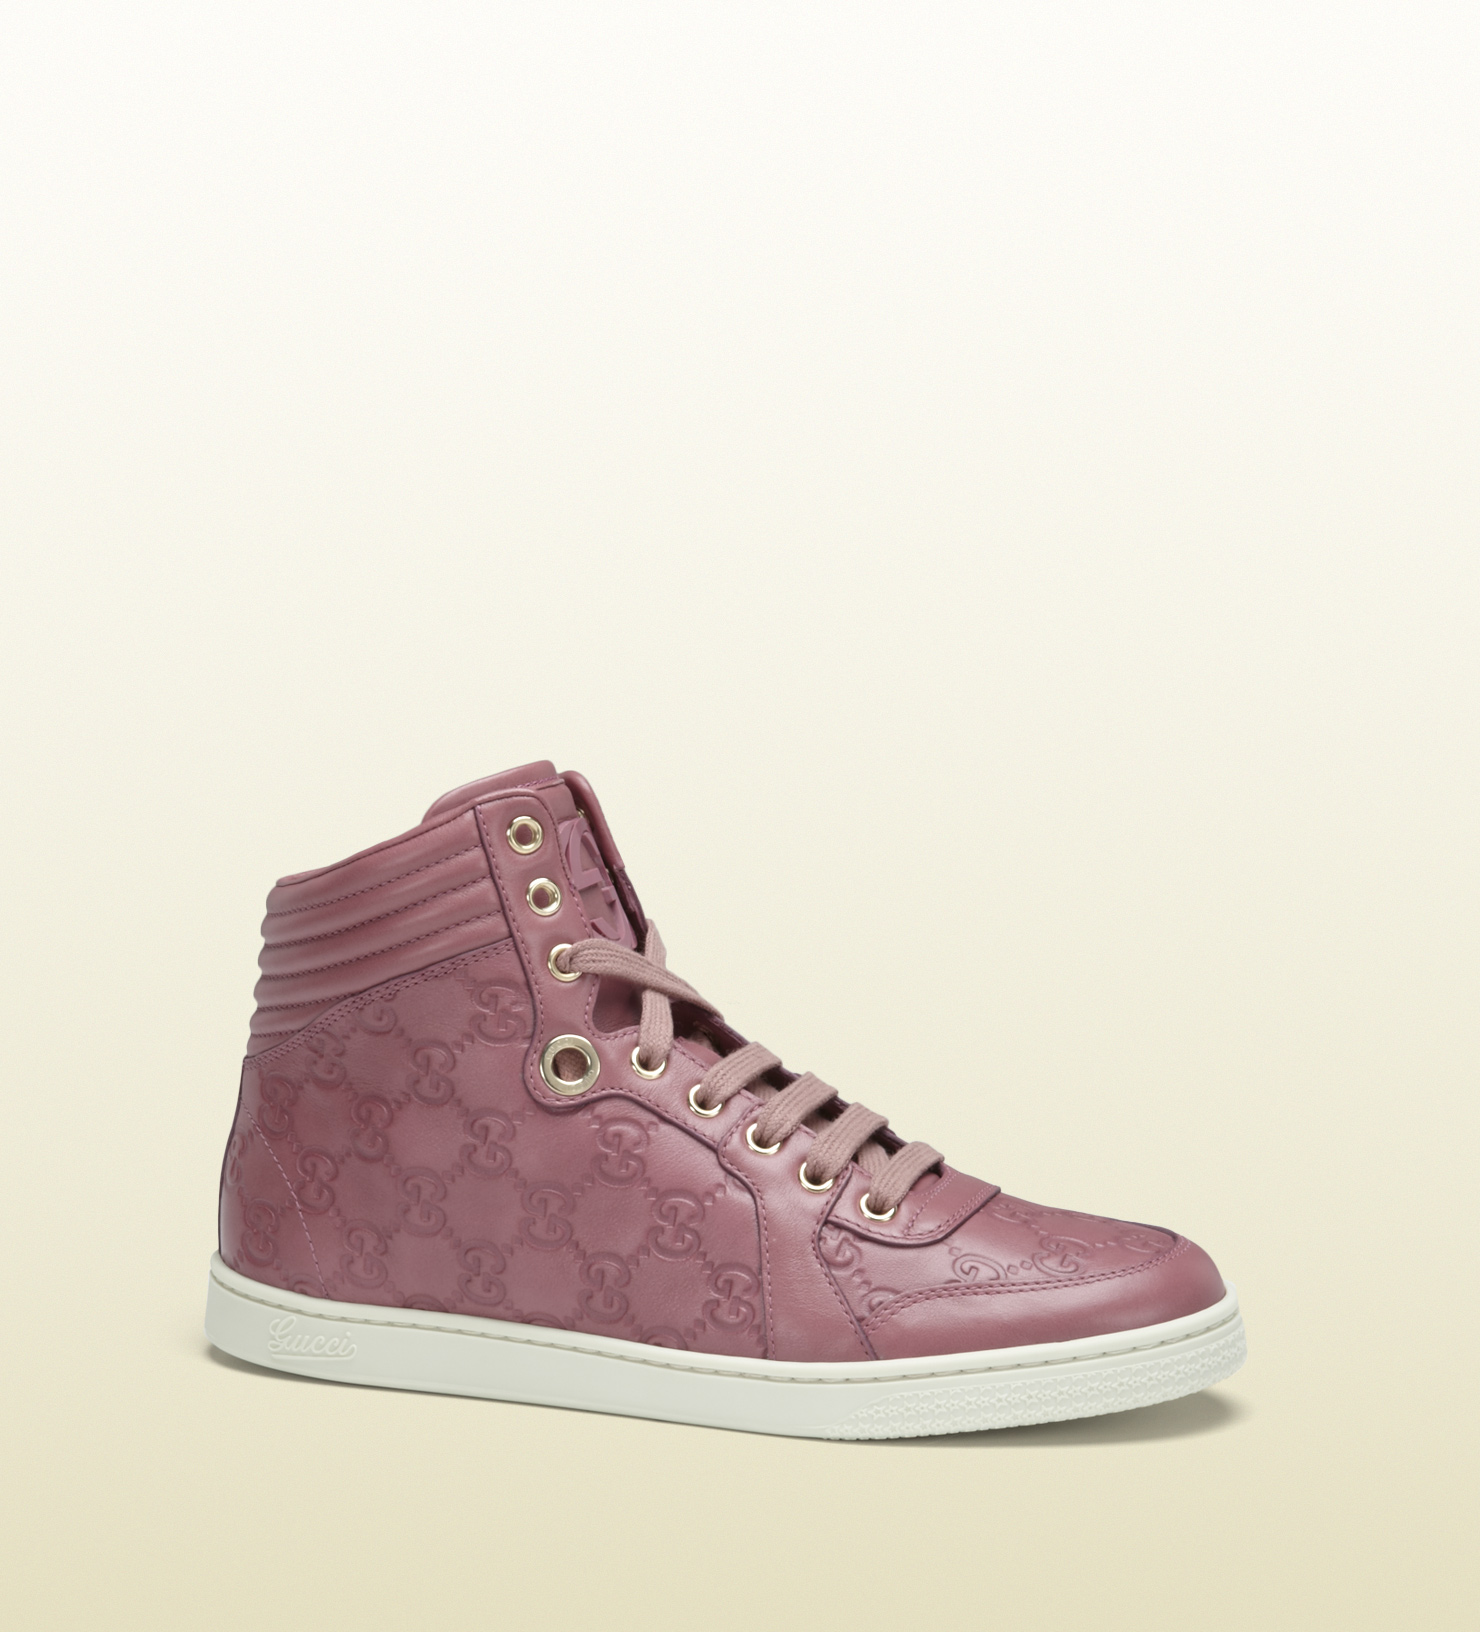 175b00696 Gucci Coda Dark Pink Guccissima Leather Hightop Sneaker in Pink for ...